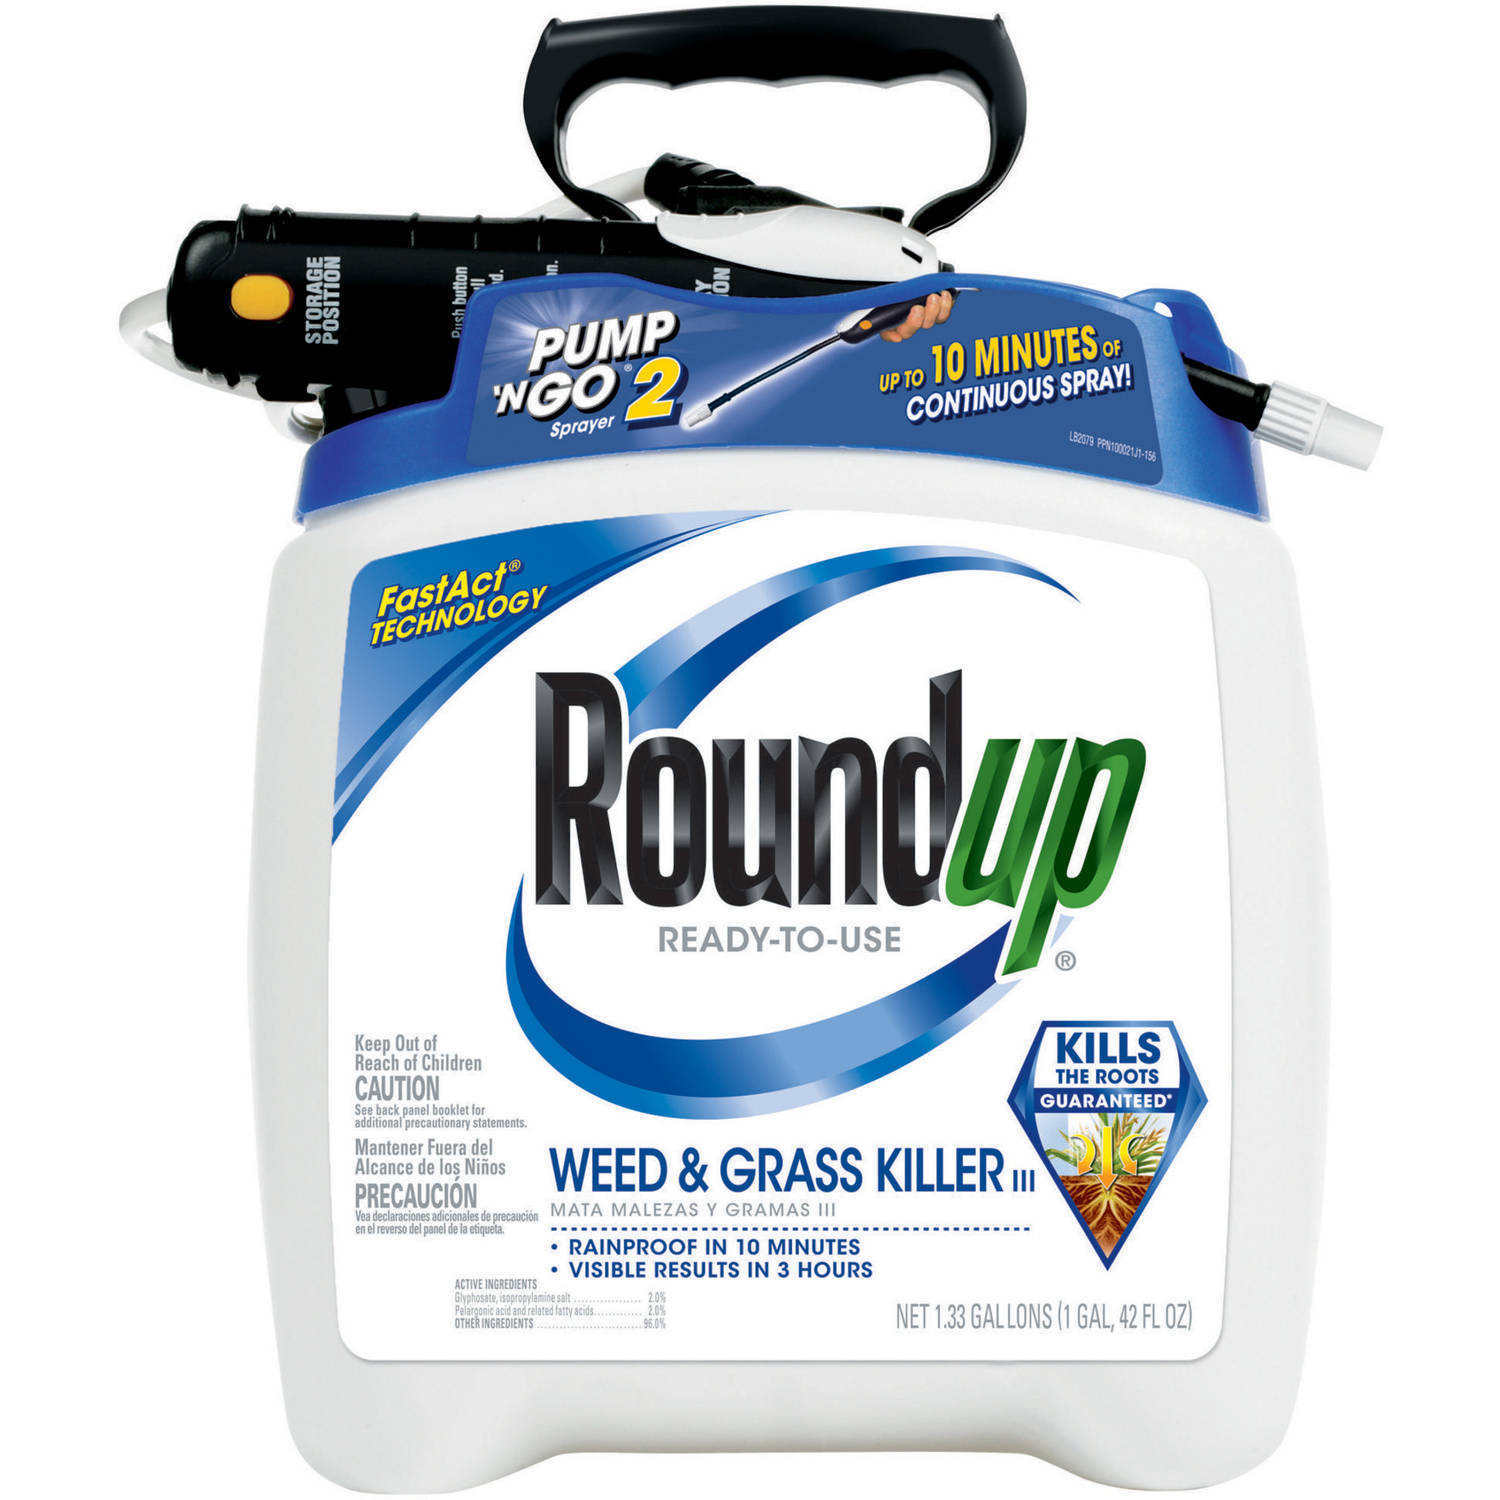 Roundup Ready-To-Use Weed & Grass Killer III Plus Pump 'N Go2 Sprayer. 1.33 gal